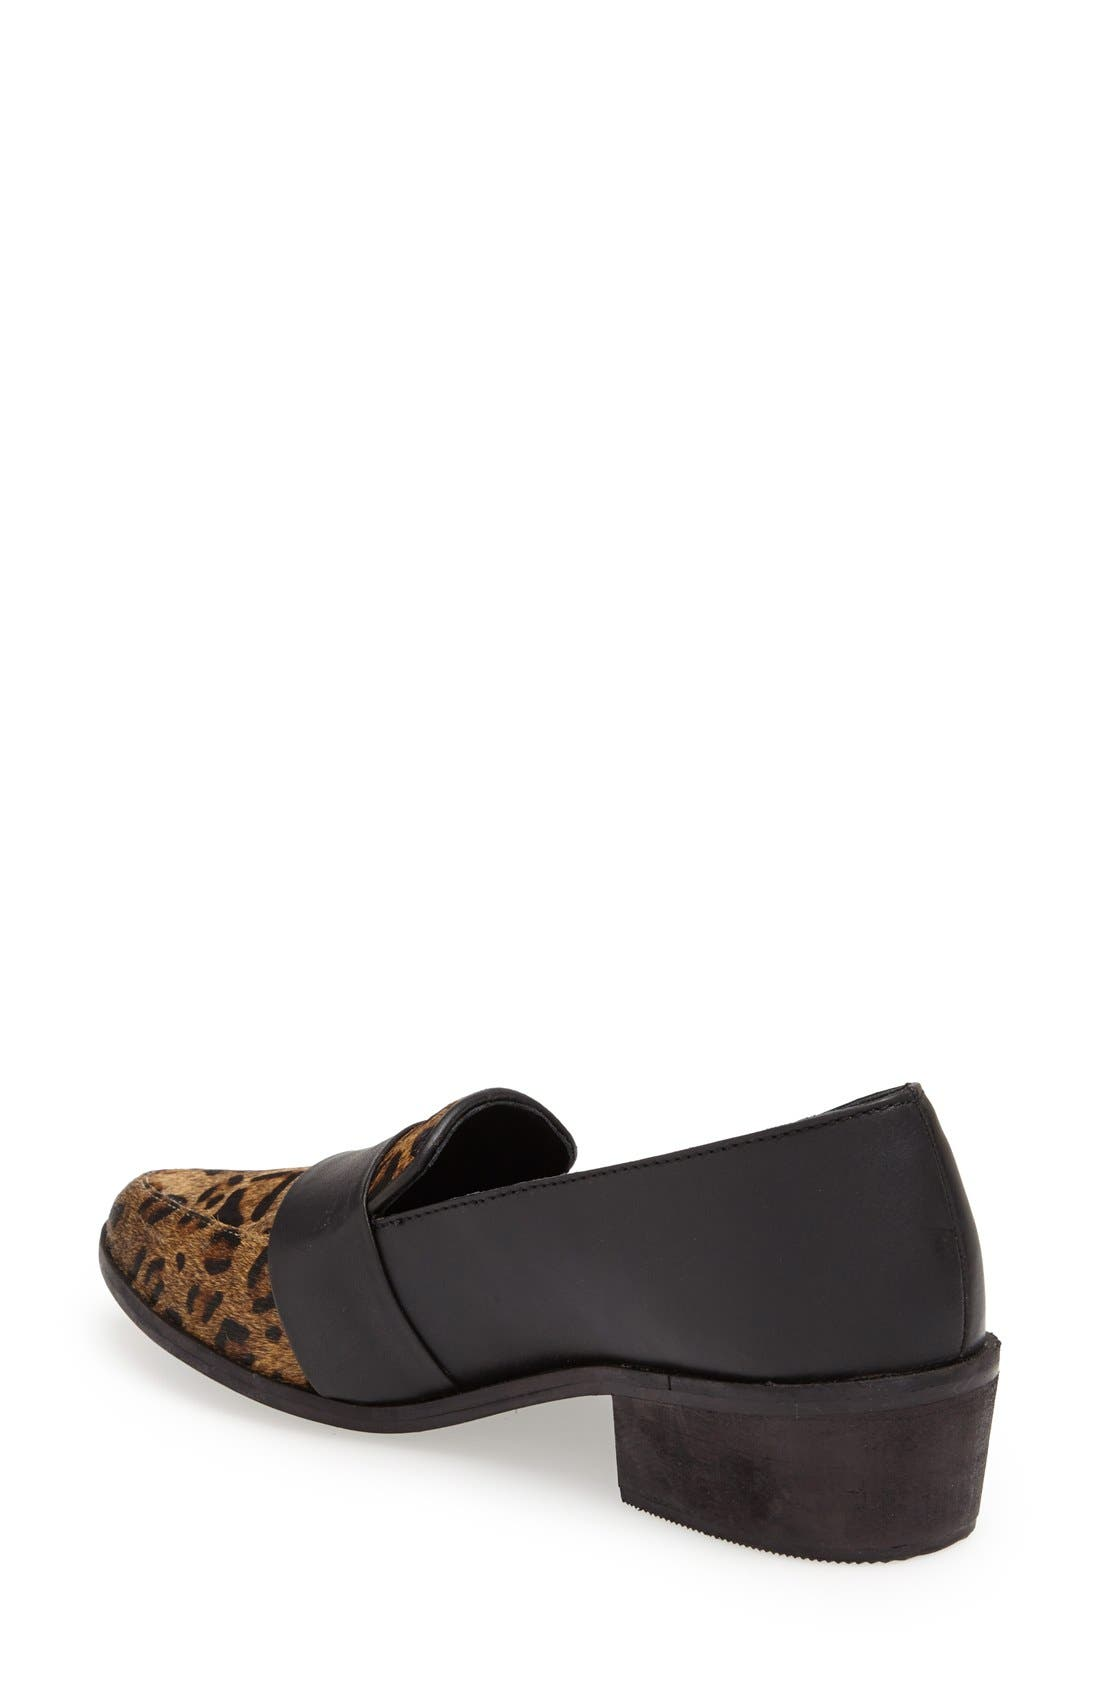 'Baha' Calf Hair and Leather Loafer,                             Alternate thumbnail 2, color,                             Black Leopard